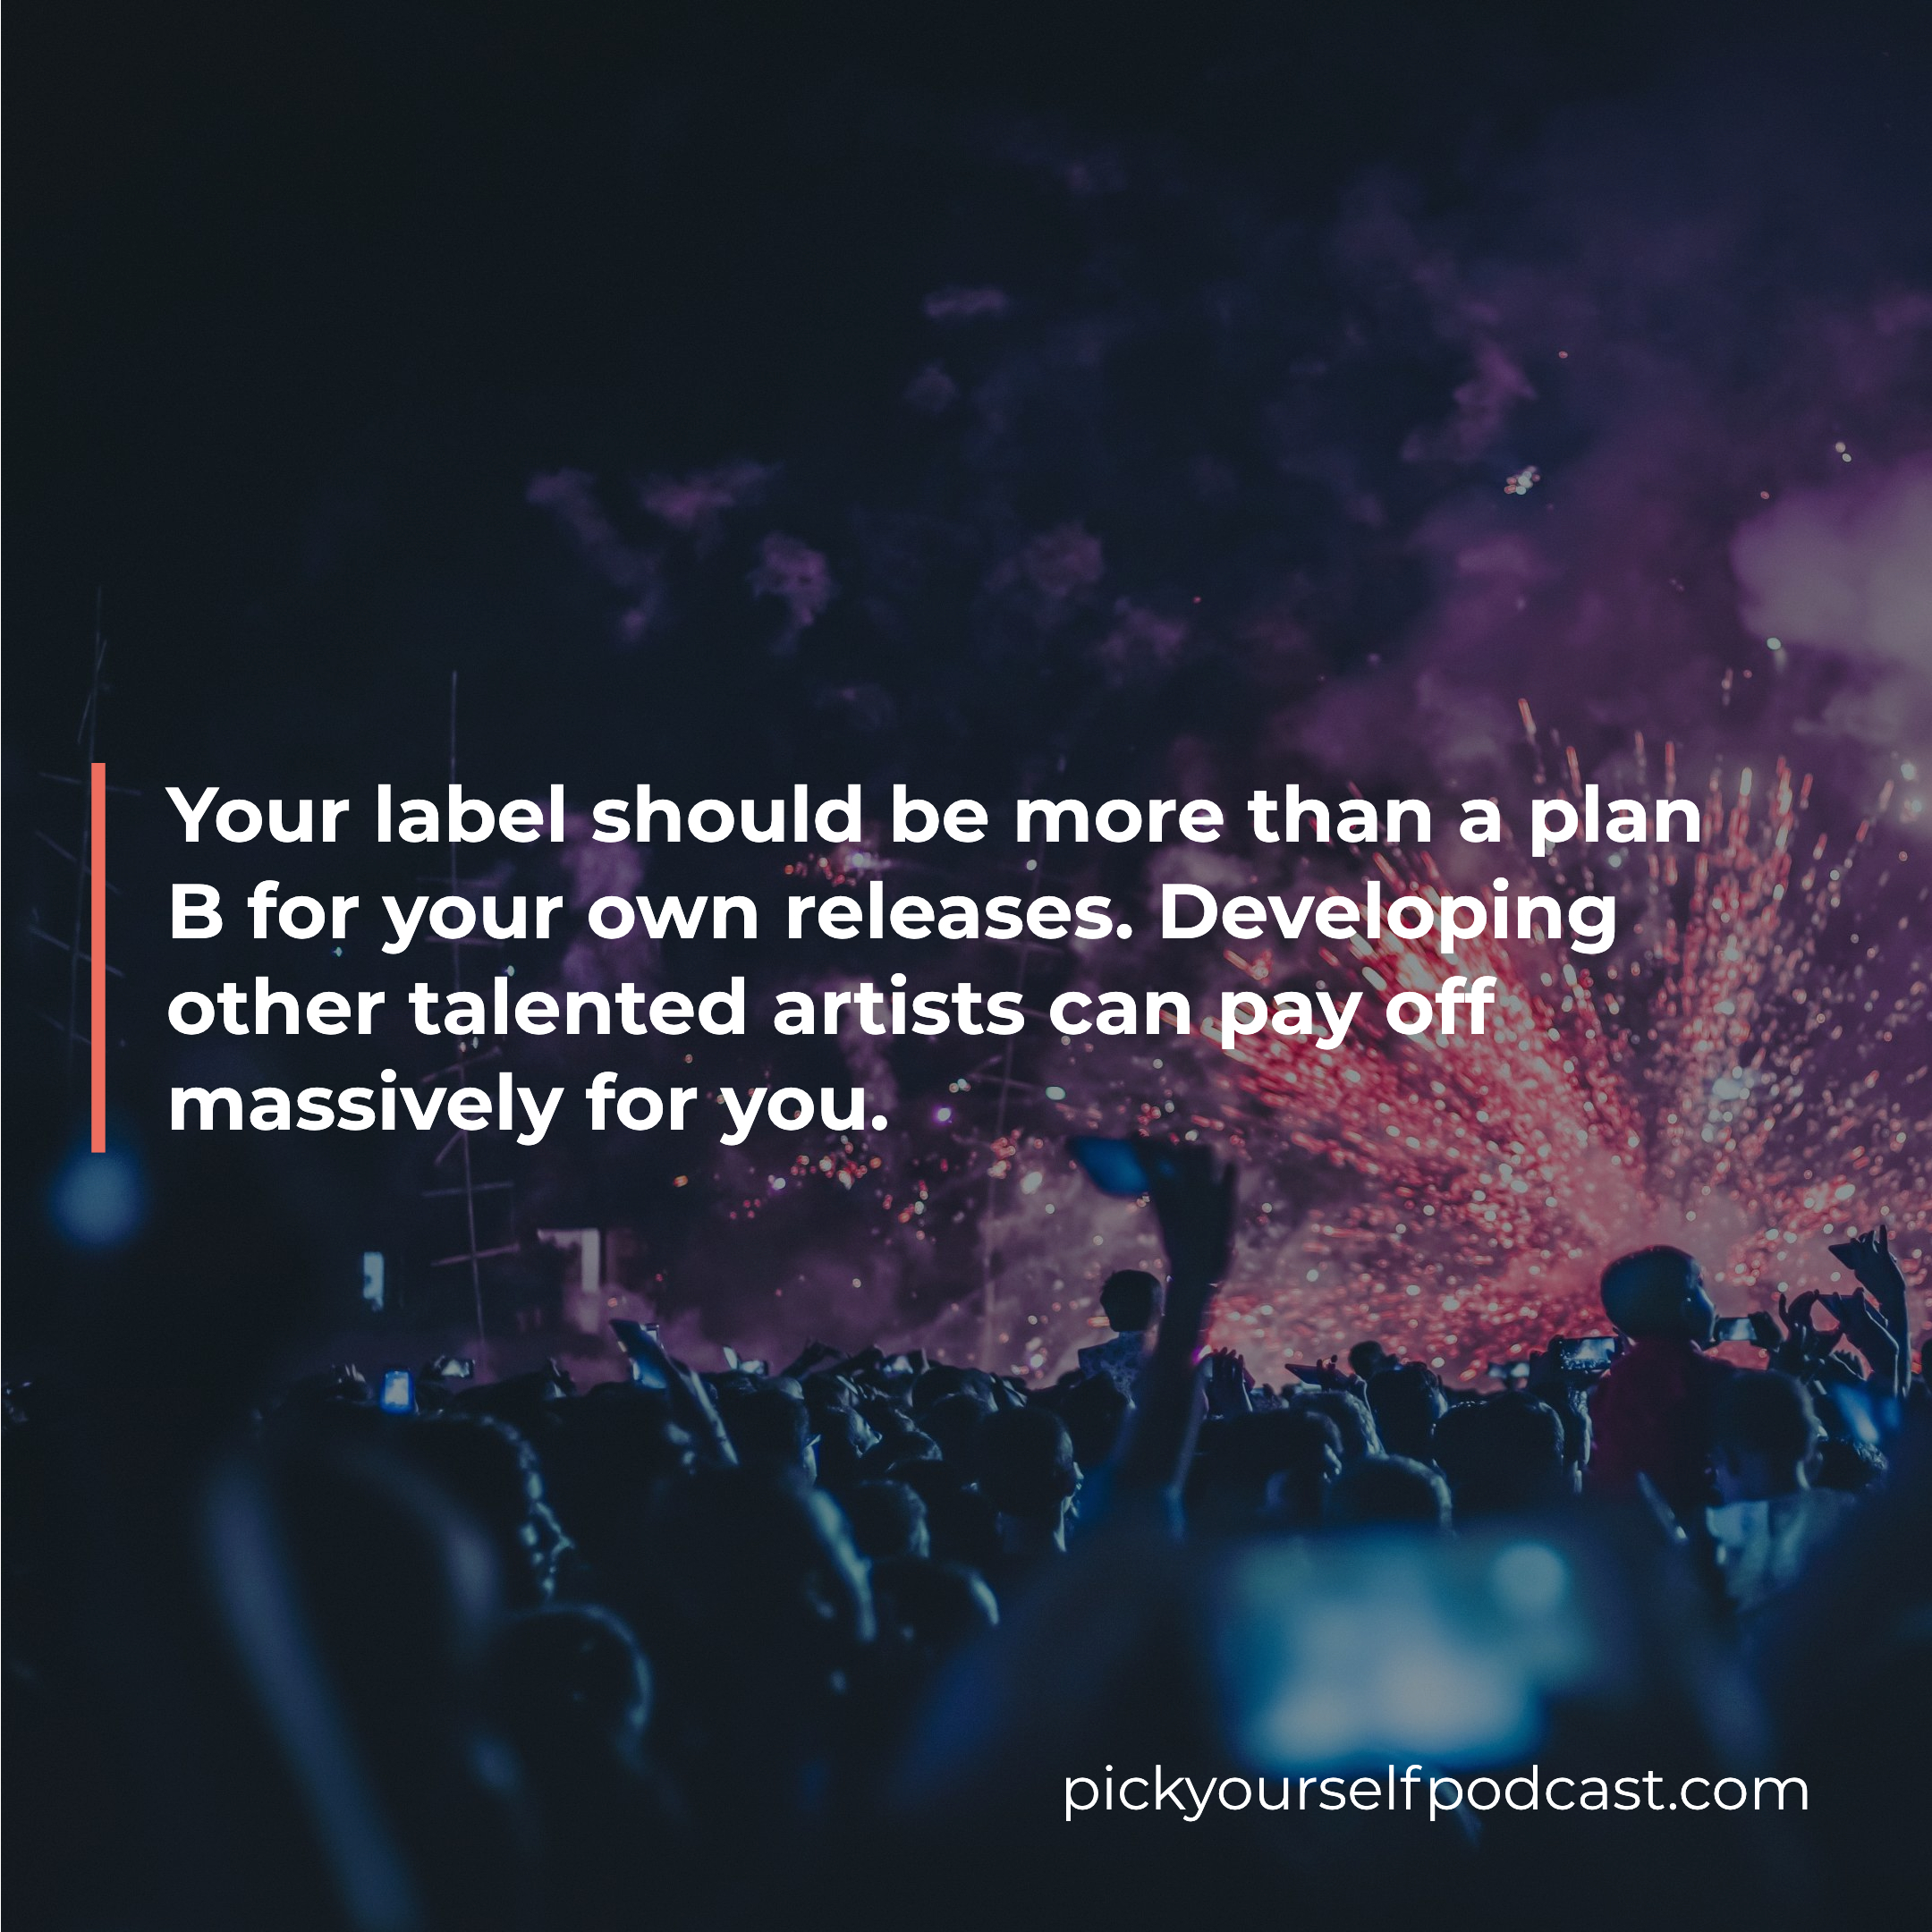 Should you start a record label visual 02. It says your label should be more than a plan B for your own releases. Developing other talented artists can pay off massively for you.